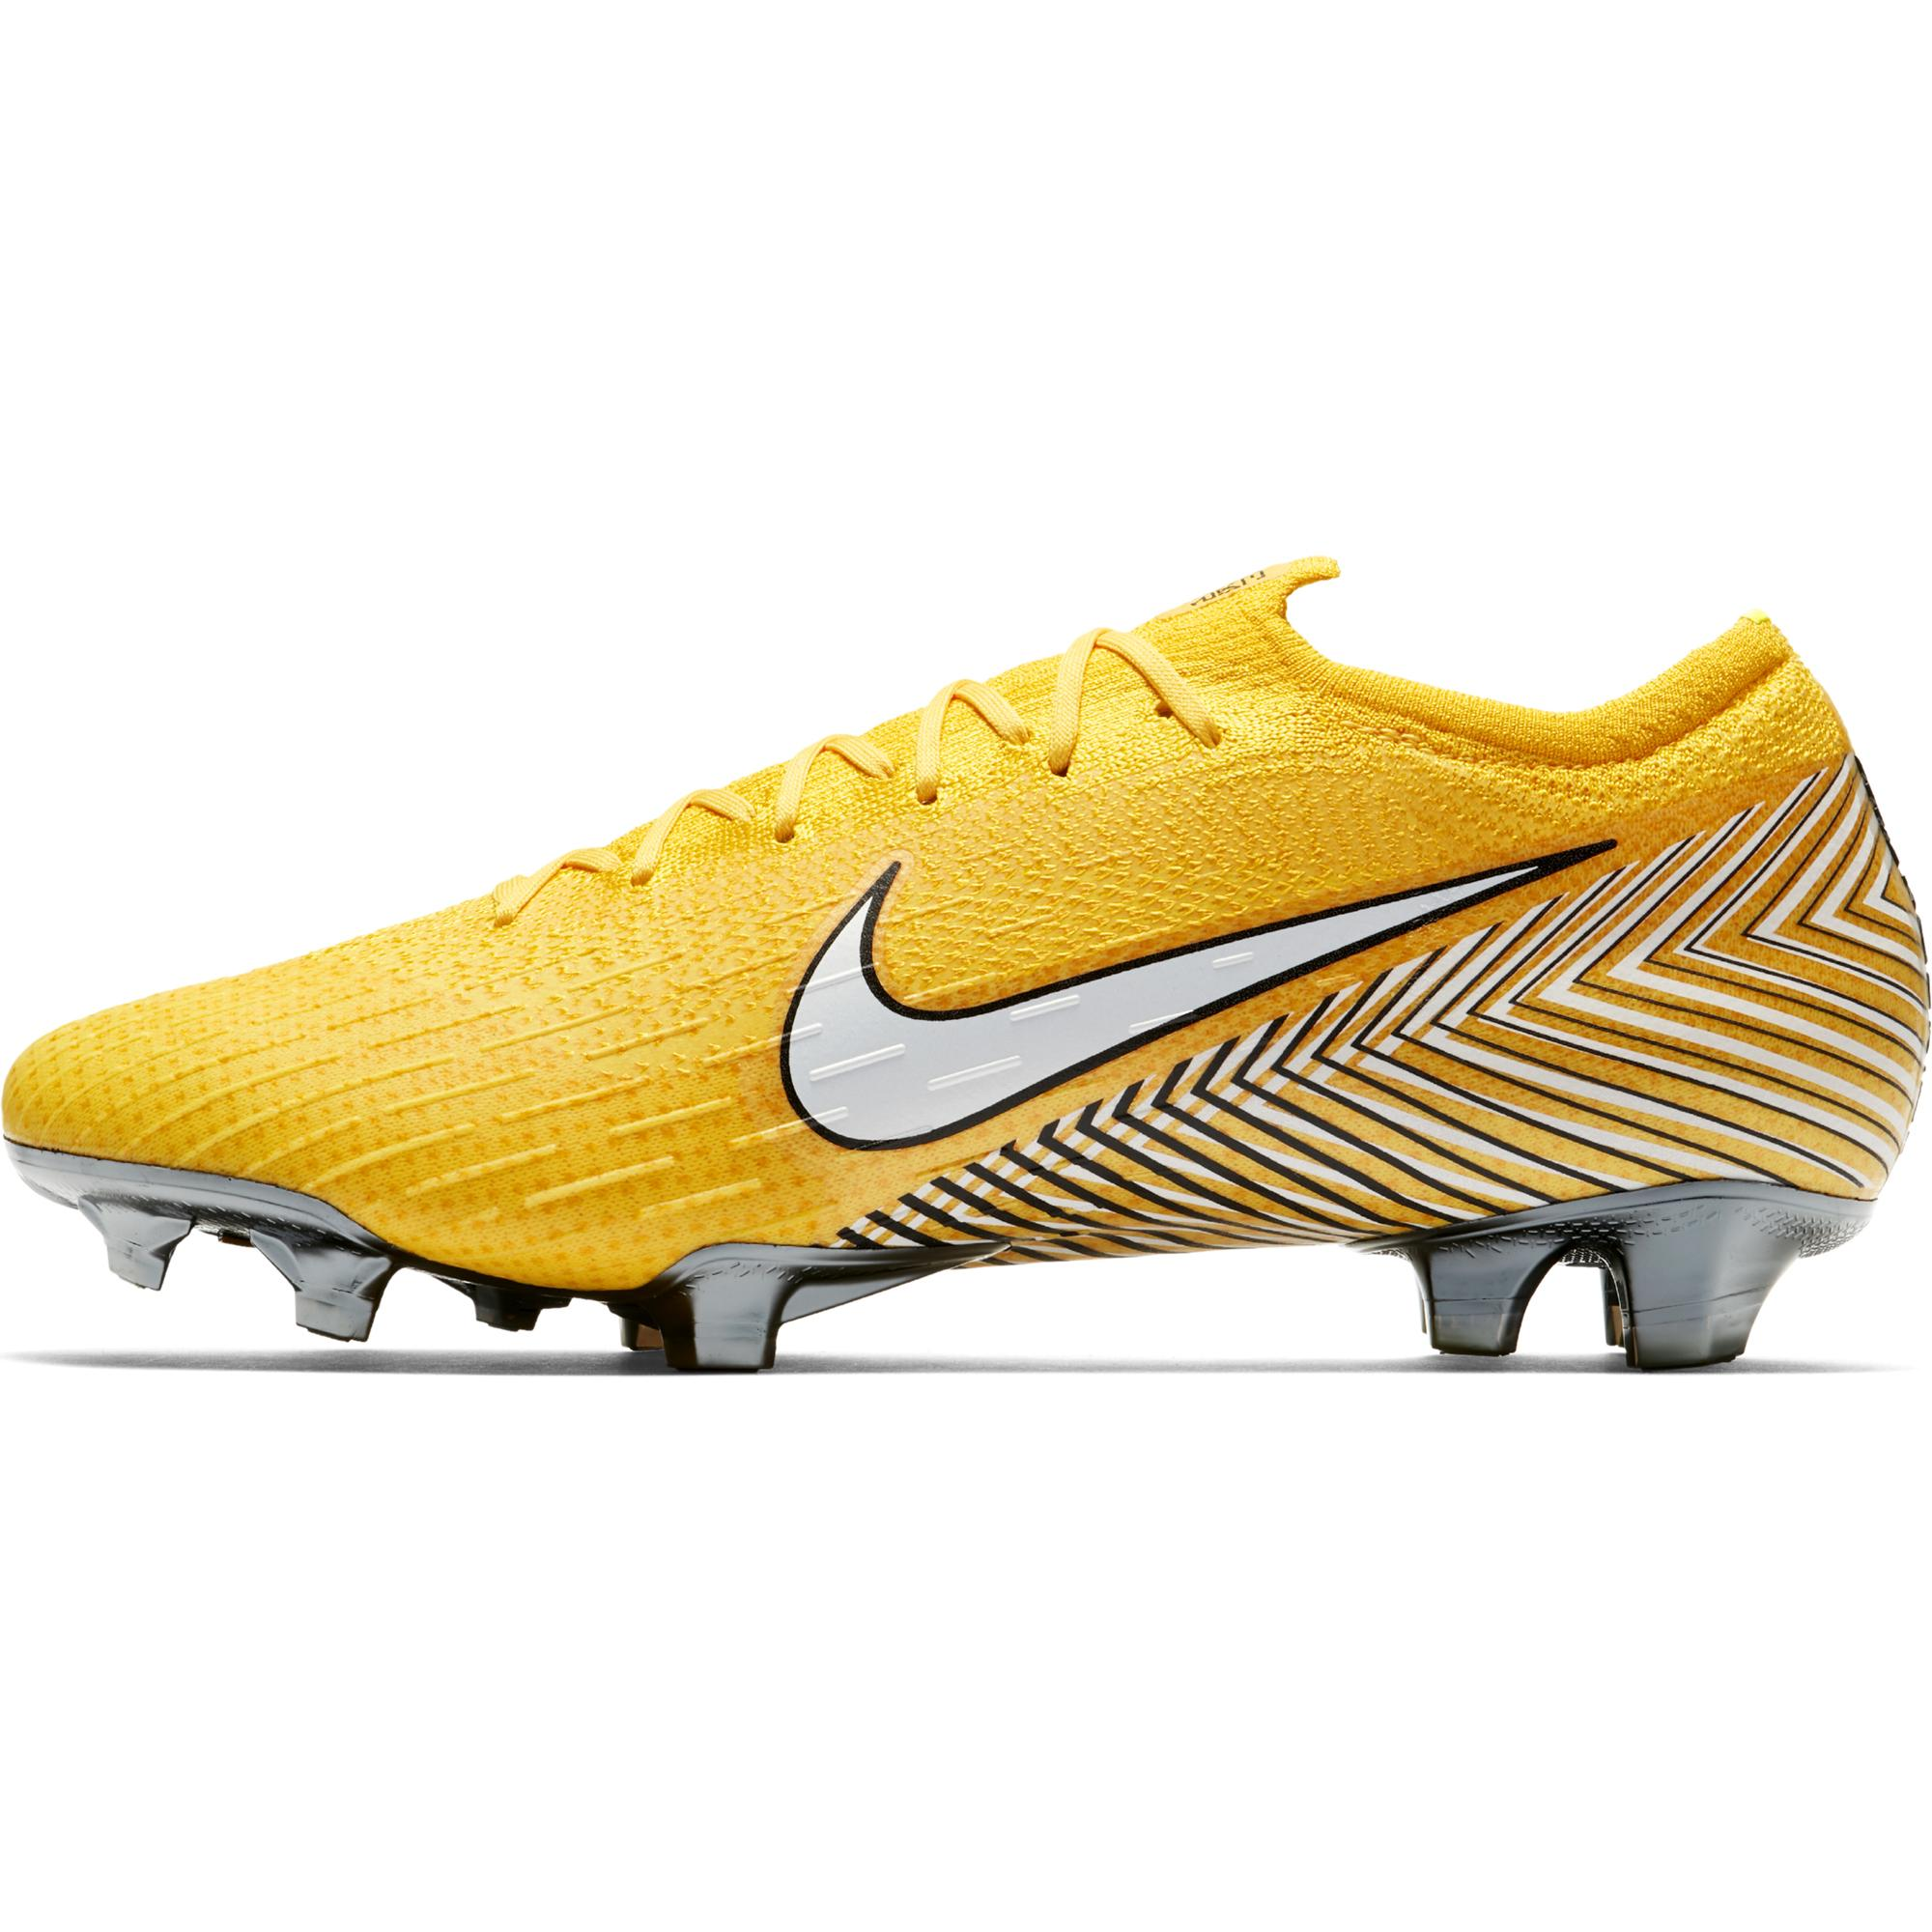 8c751d114 Nike Football Shoes Vapor 12 Elite Fg Neymar Jr Amarillo white ...